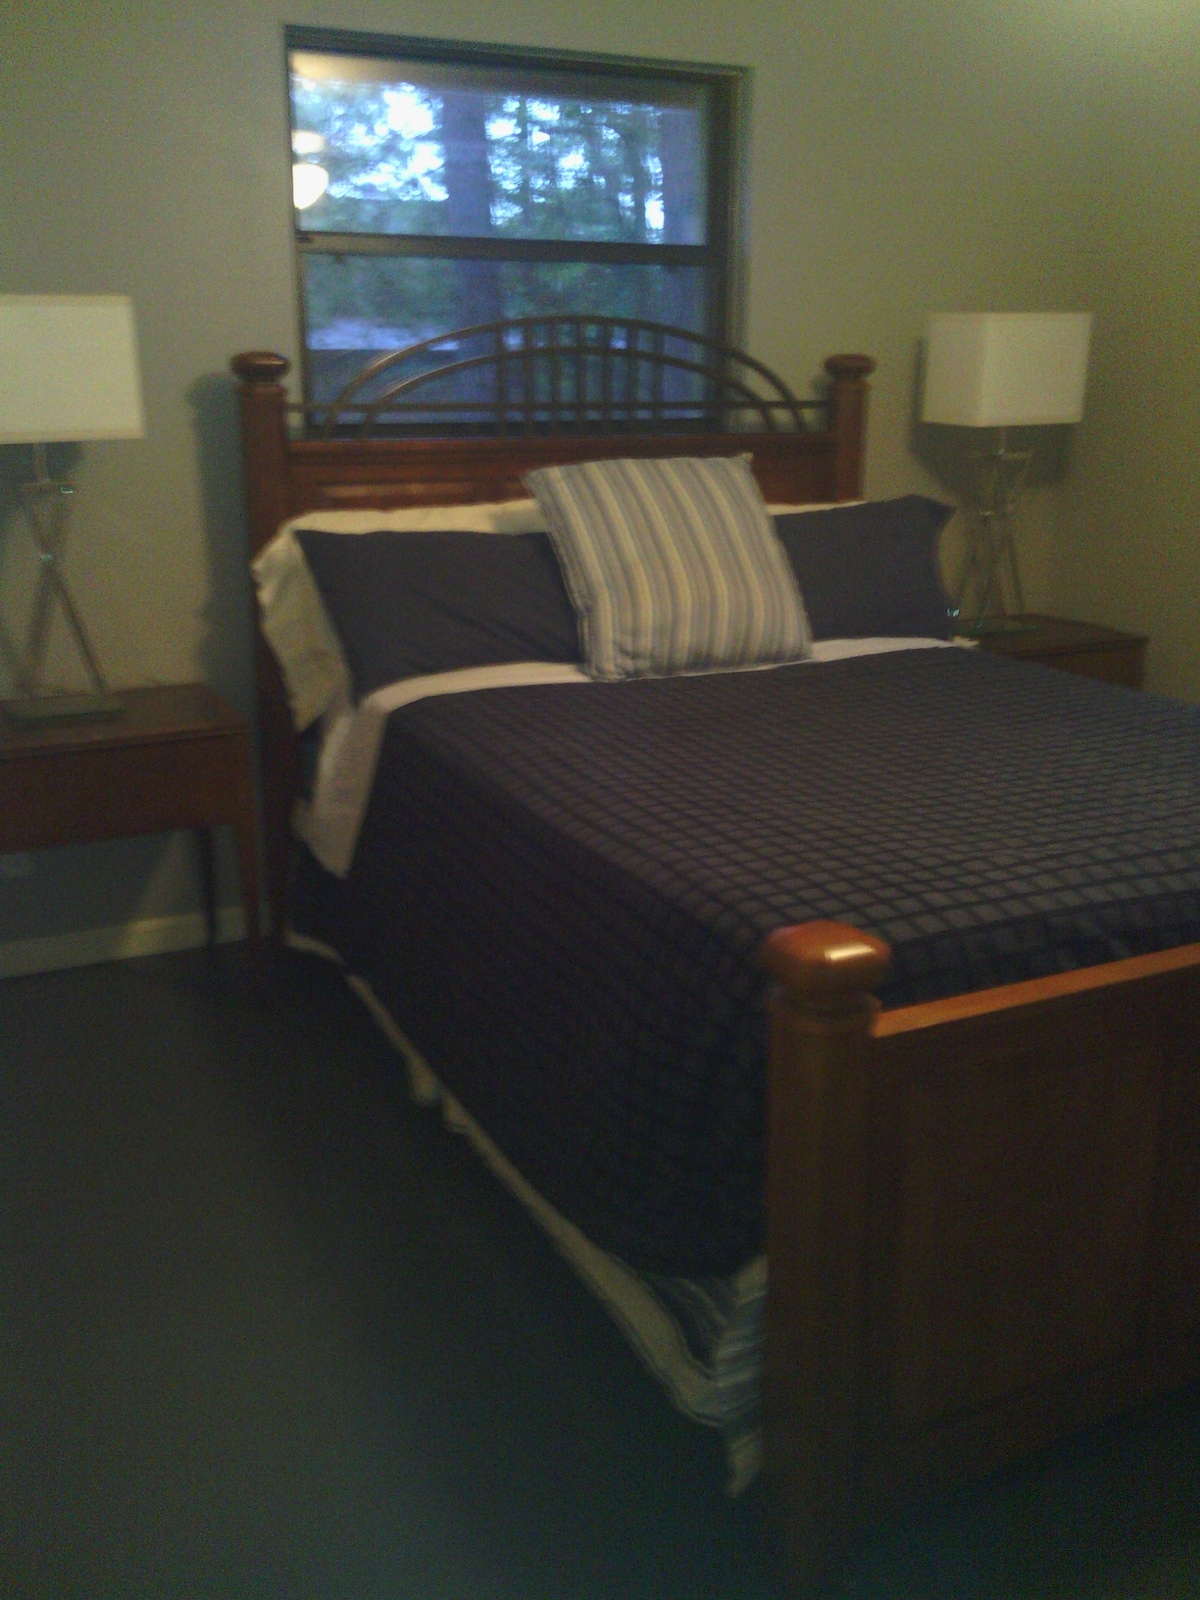 Guest room - this is the room you're renting on Airbnb- private